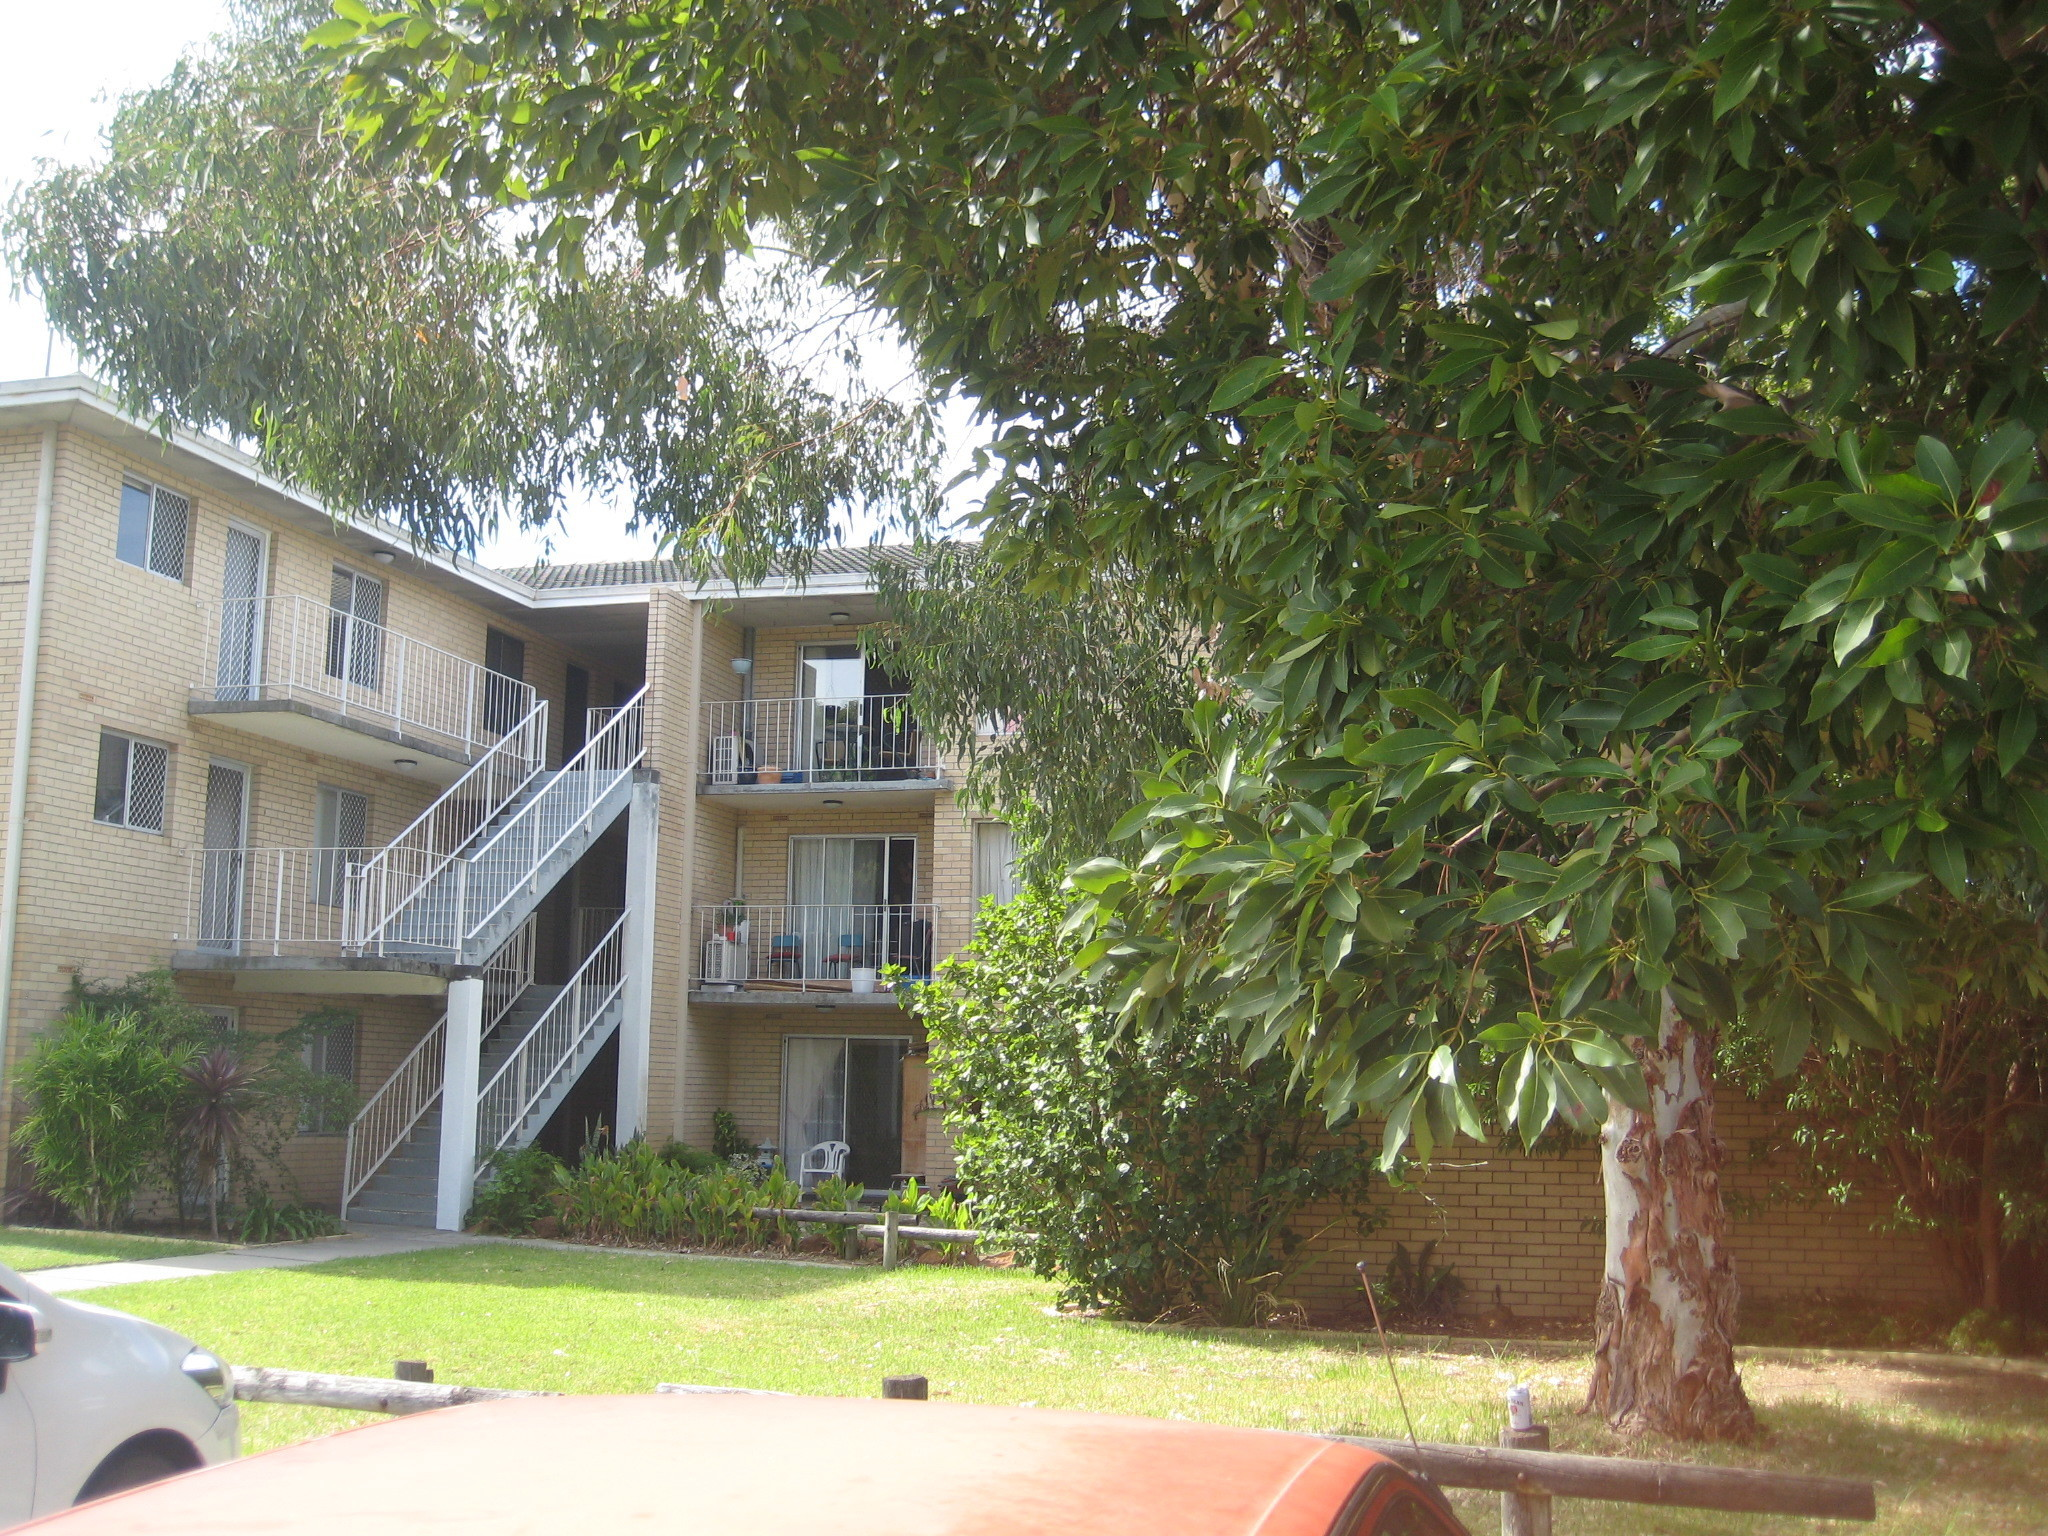 13/66 Central Avenue  Maylands 6051